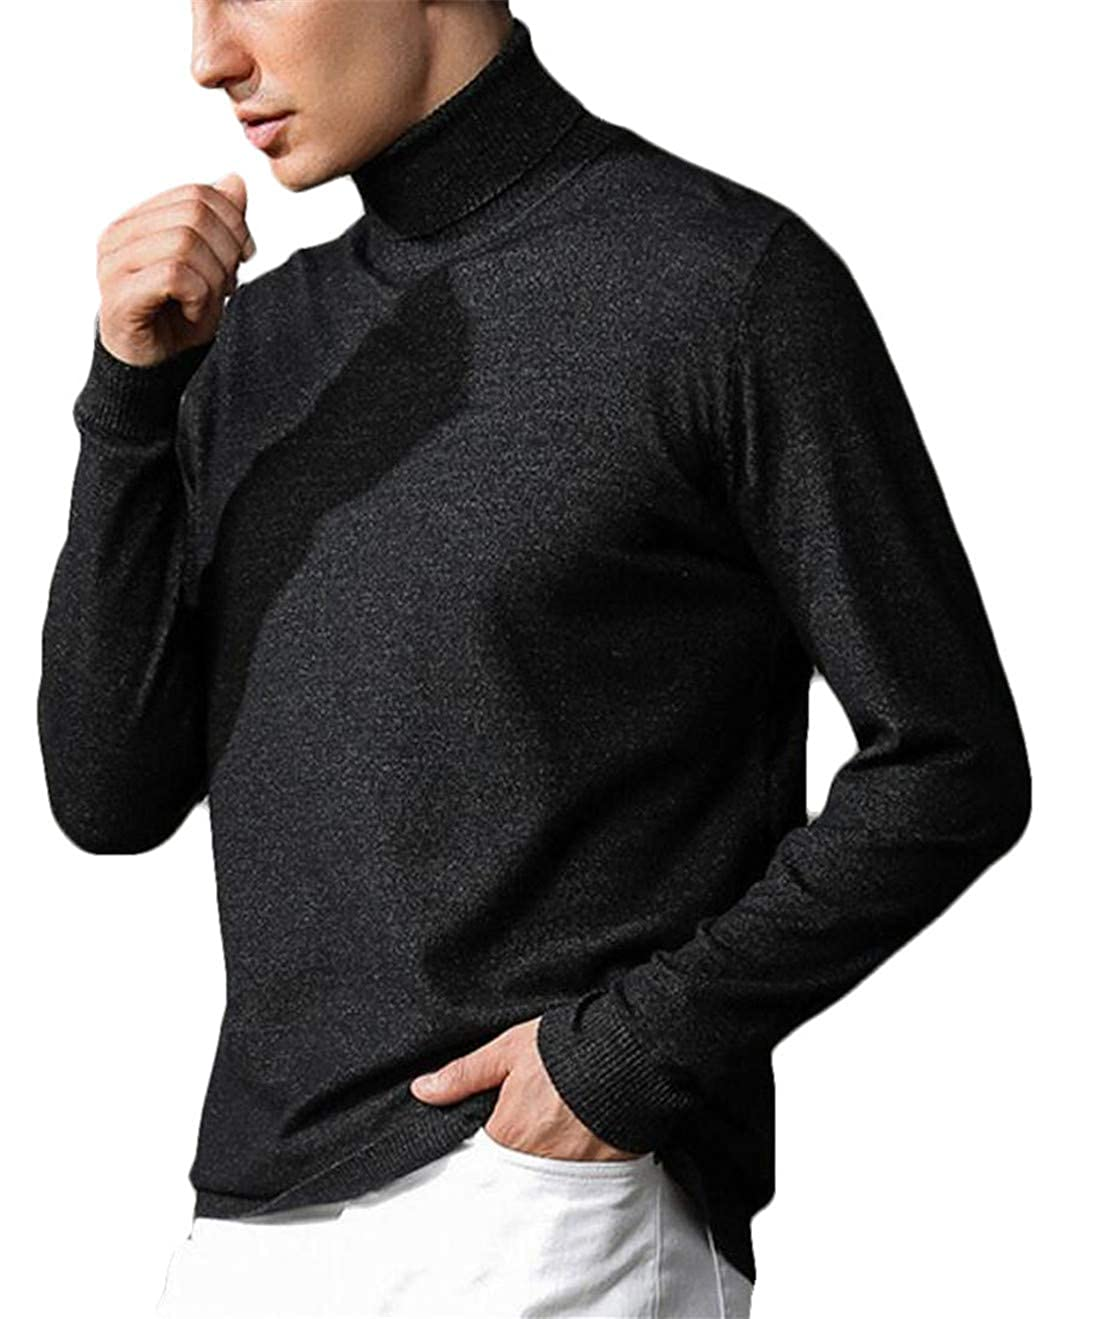 SELX Men Solid Pullover Slim Fit Turtleneck Thermal Long Sleeve Knitted Sweater